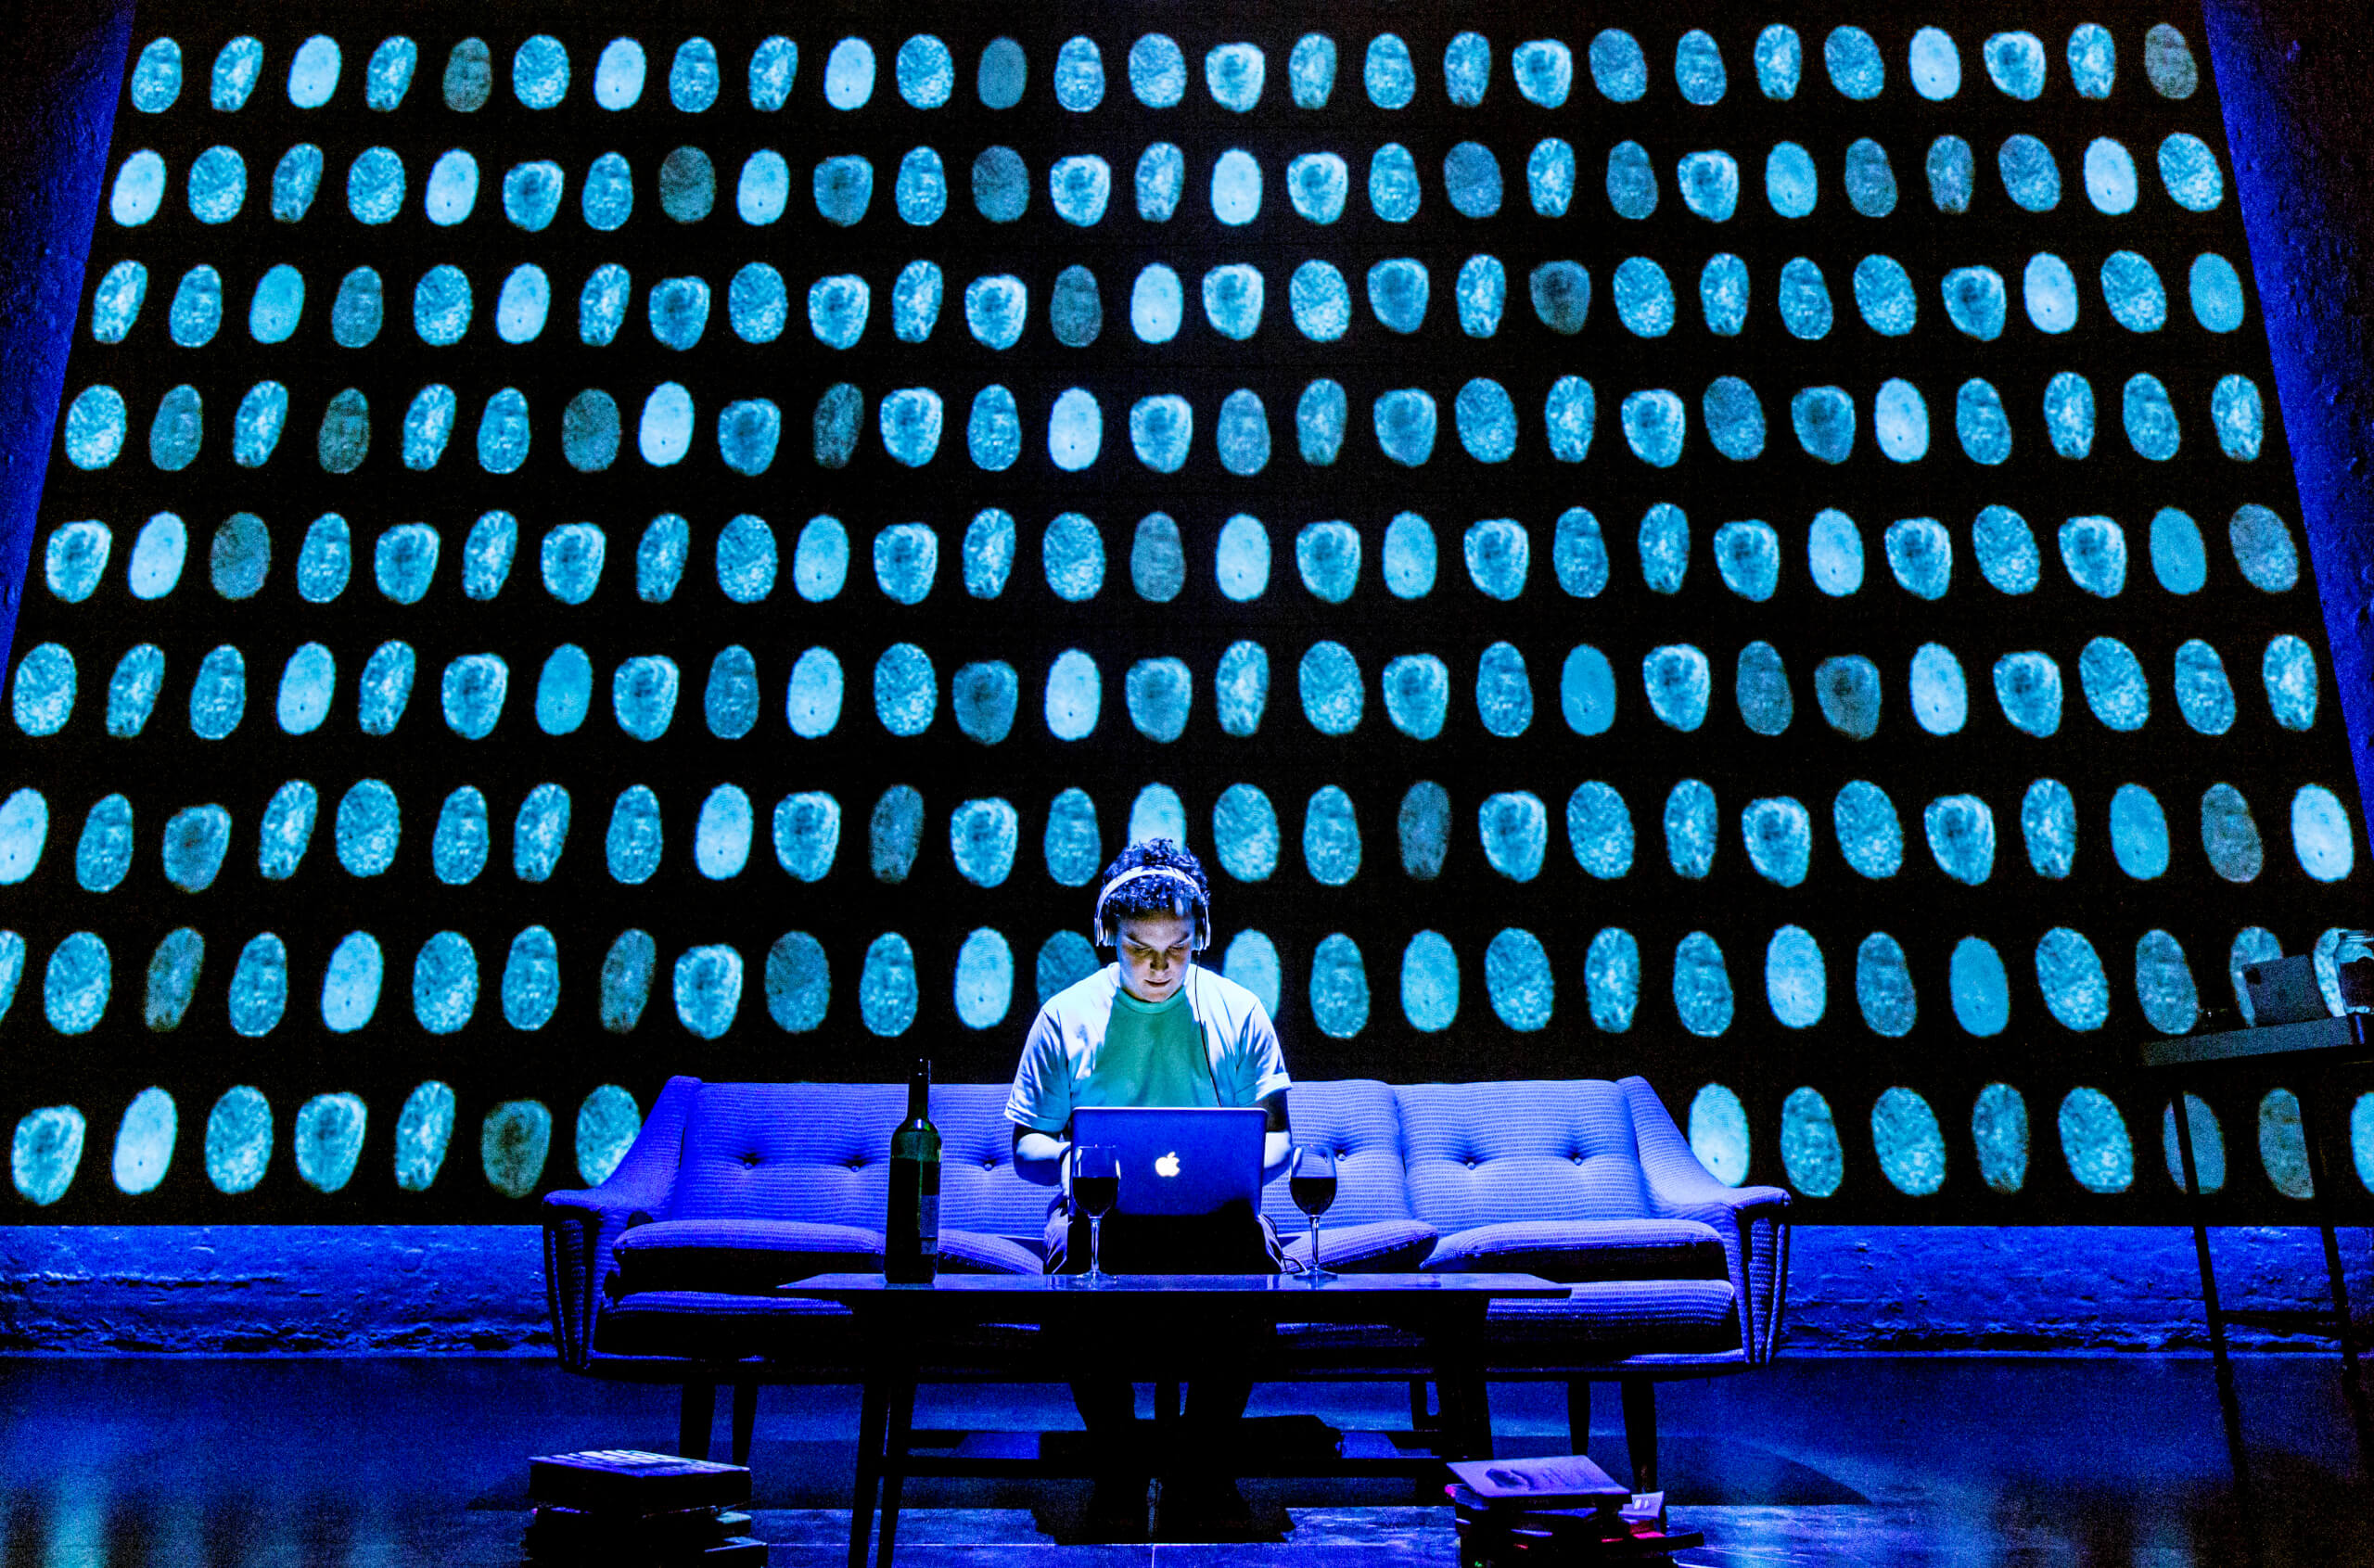 privacy_JohanPersson_Donmar Warehouse